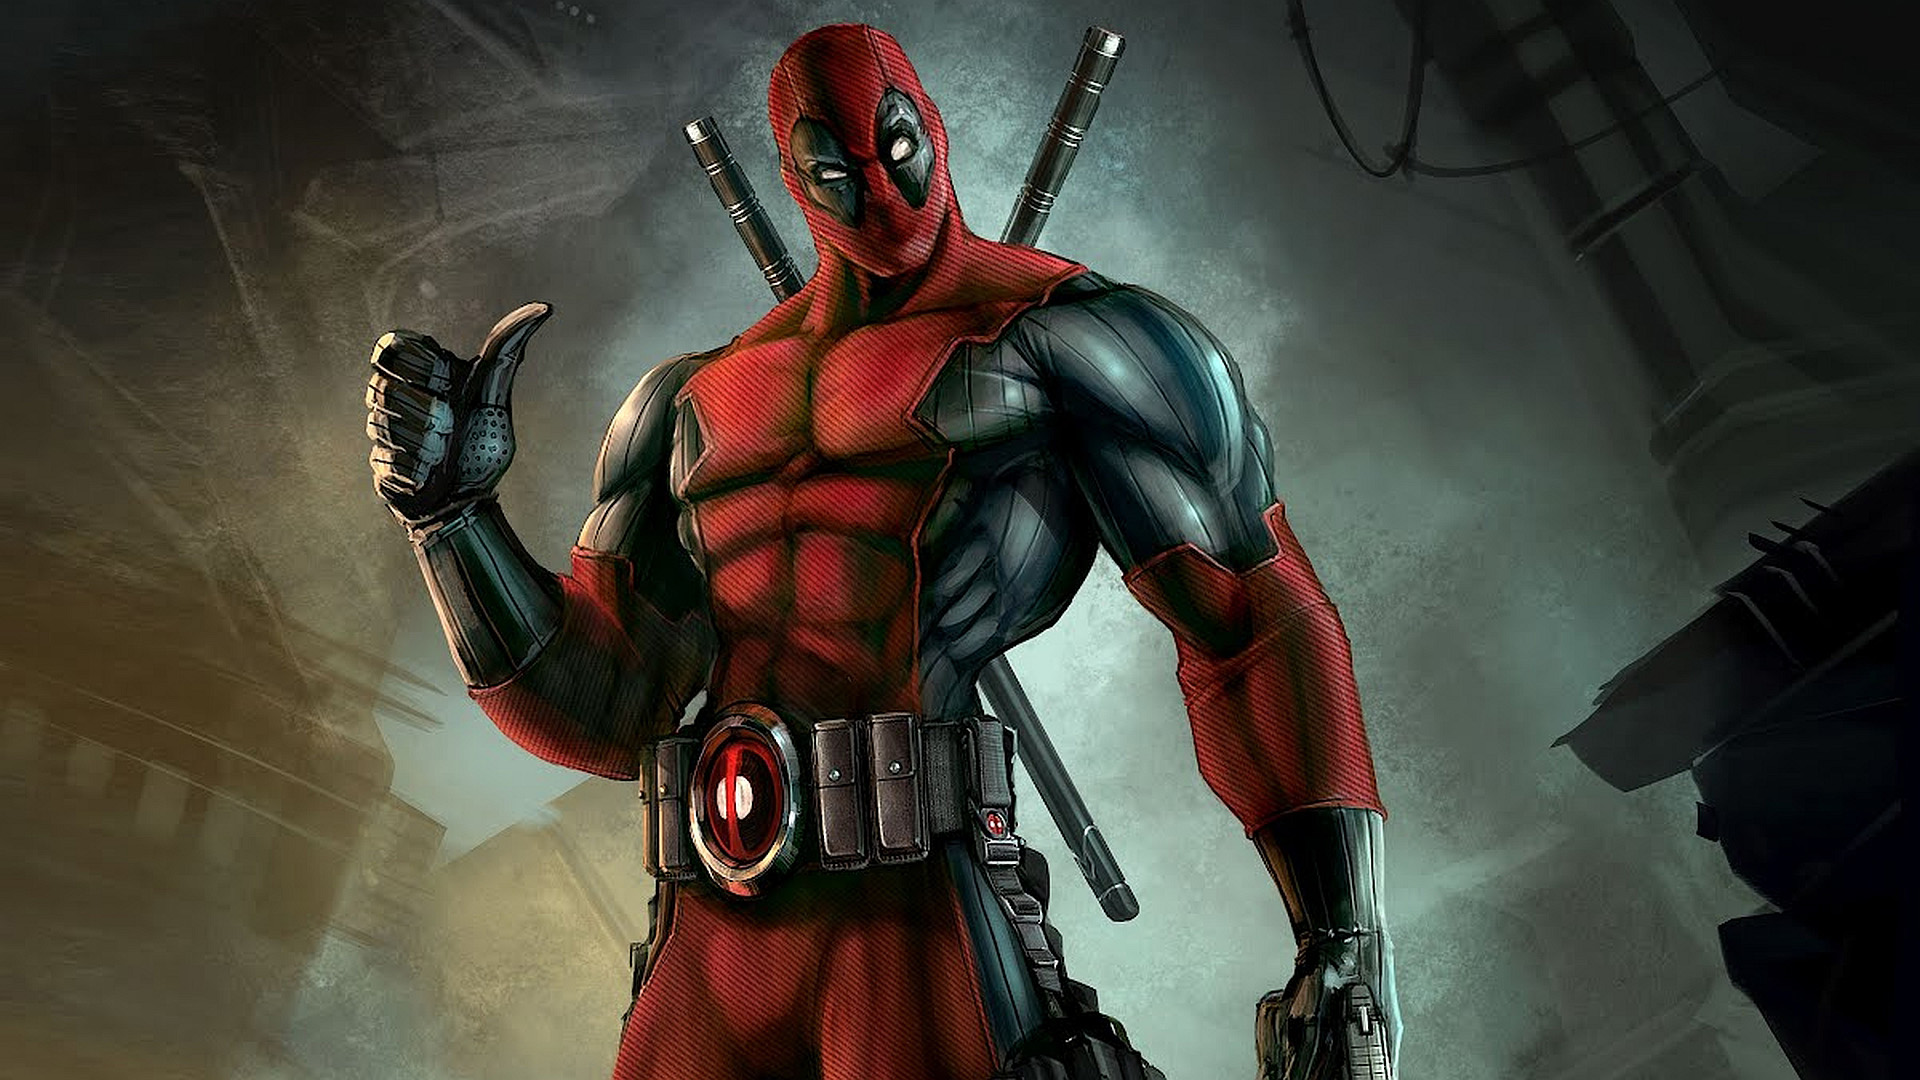 Deadpool Wallpaper HD Free Download PixelsTalk Wallpapers 1920x1080